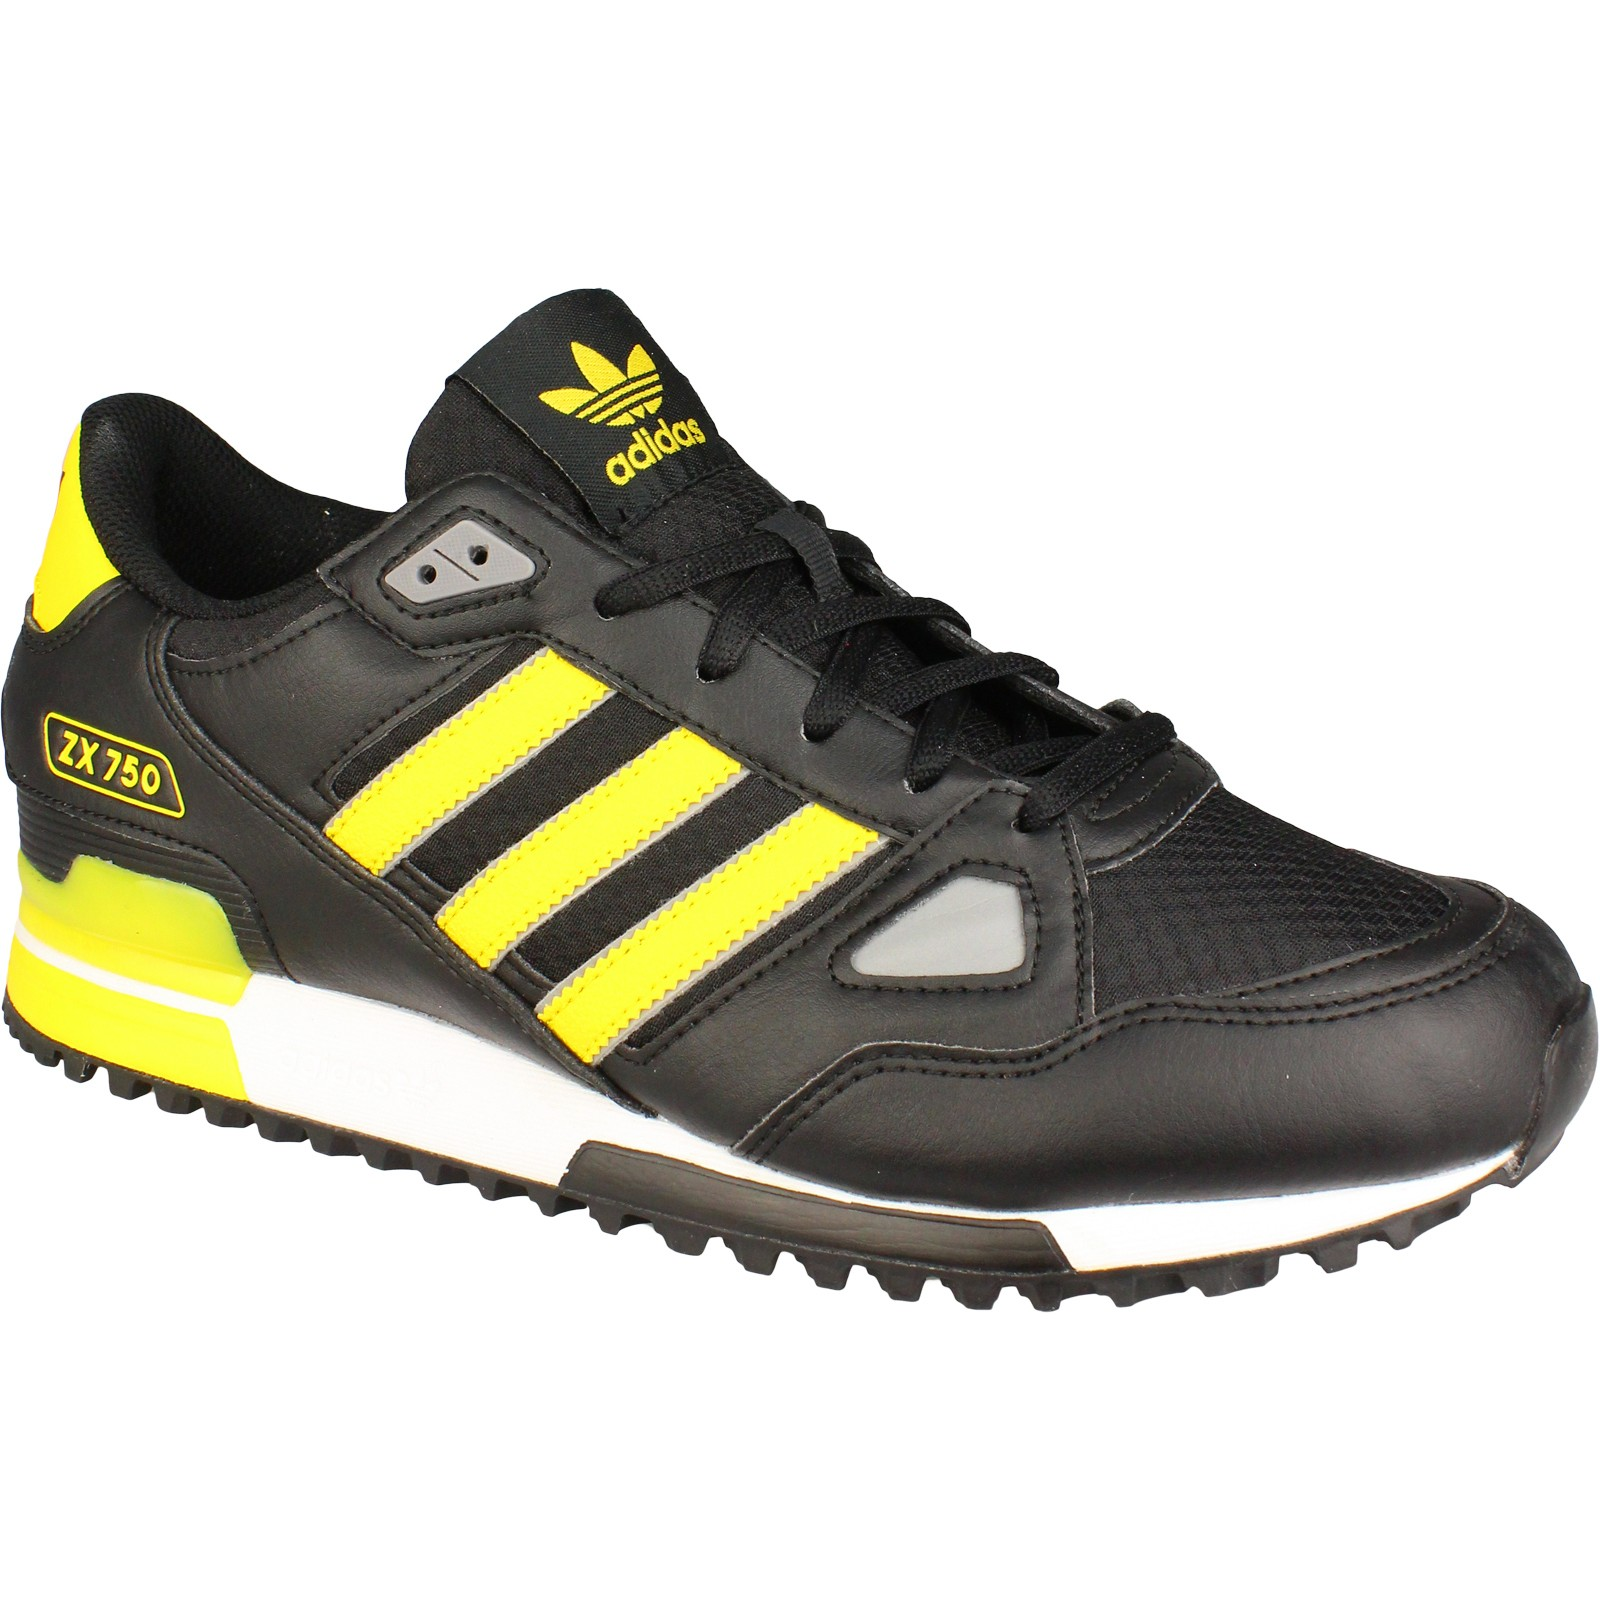 official photos e7d5c 268f4 adidas zx 750 pelle colore